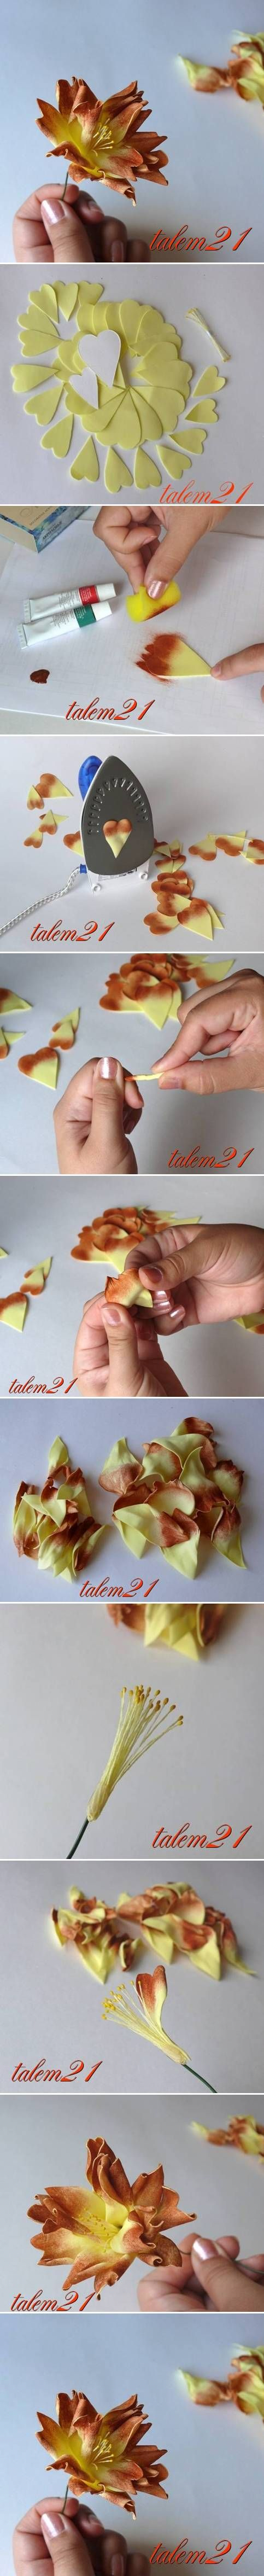 DIY Fantasy Flower DIY Projects | UsefulDIY.com